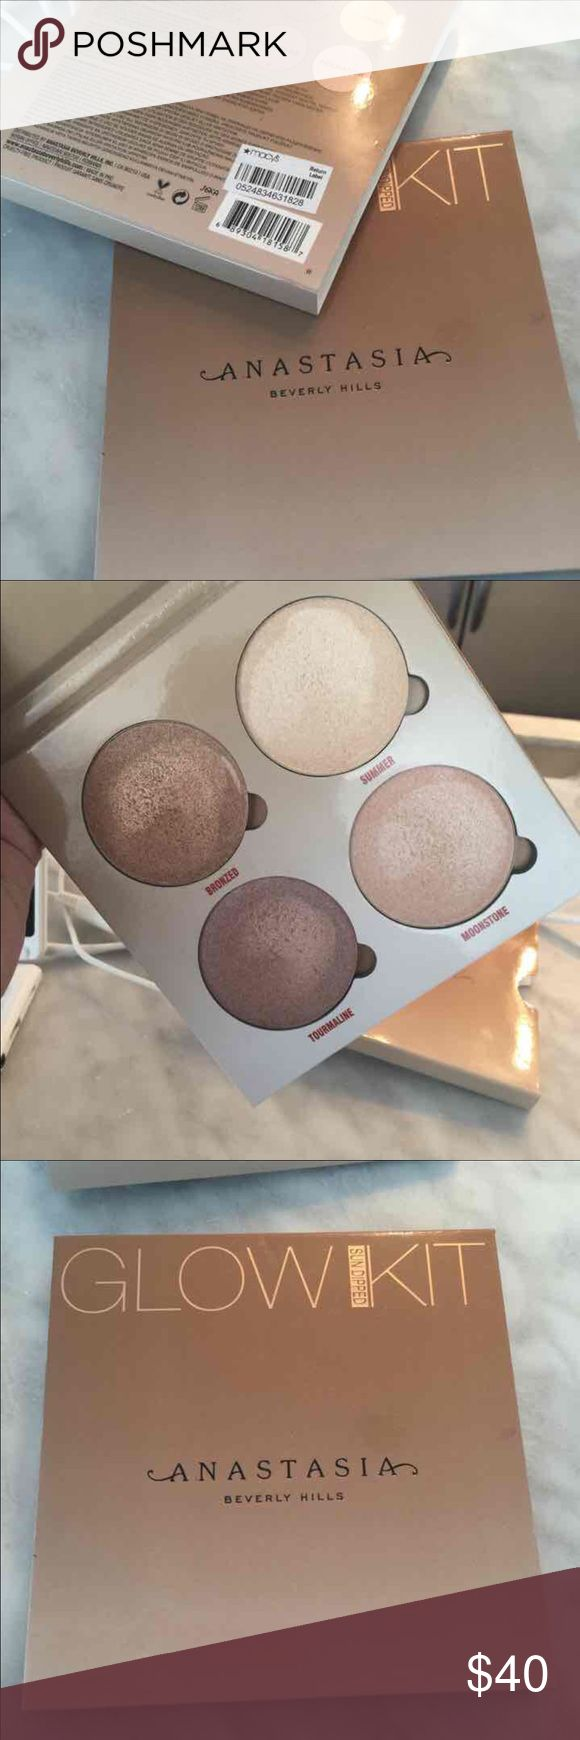 Anastasia Bh Glow kit Buttery Smooth Feels Great Nice Colors 😍 PRICE IS FIRM Anastasia Beverly Hills Makeup Bronzer